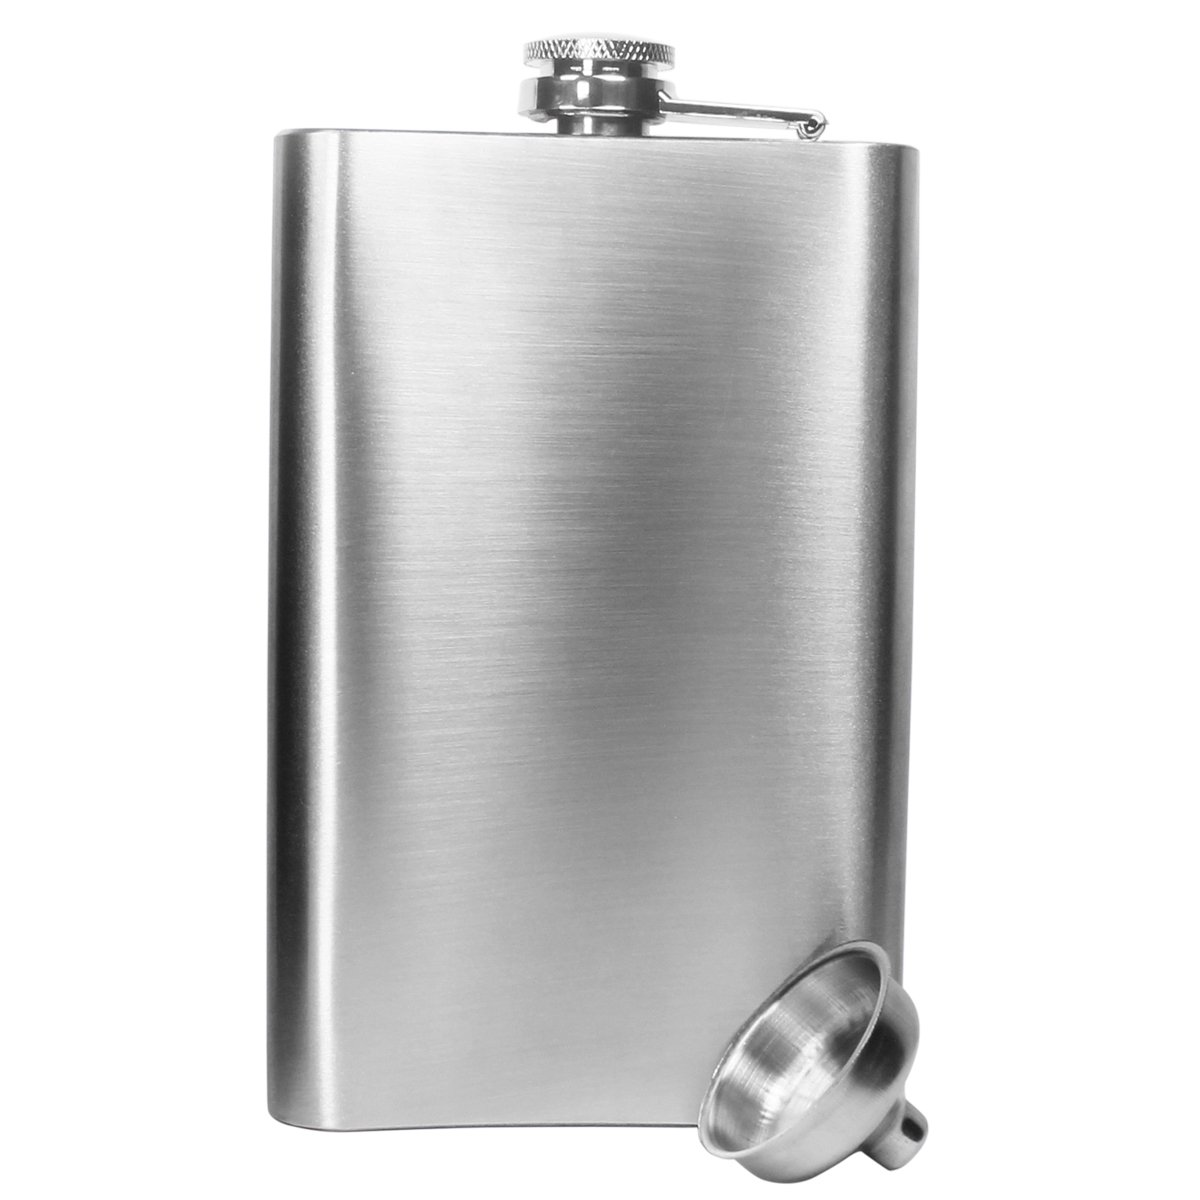 Hip Flask Flask Alcohol Stainless Steel Hip Flask for Men 10 oz with Handy Funnel in Stainless Steel for Storing Whiskey//Alcohol,Silver